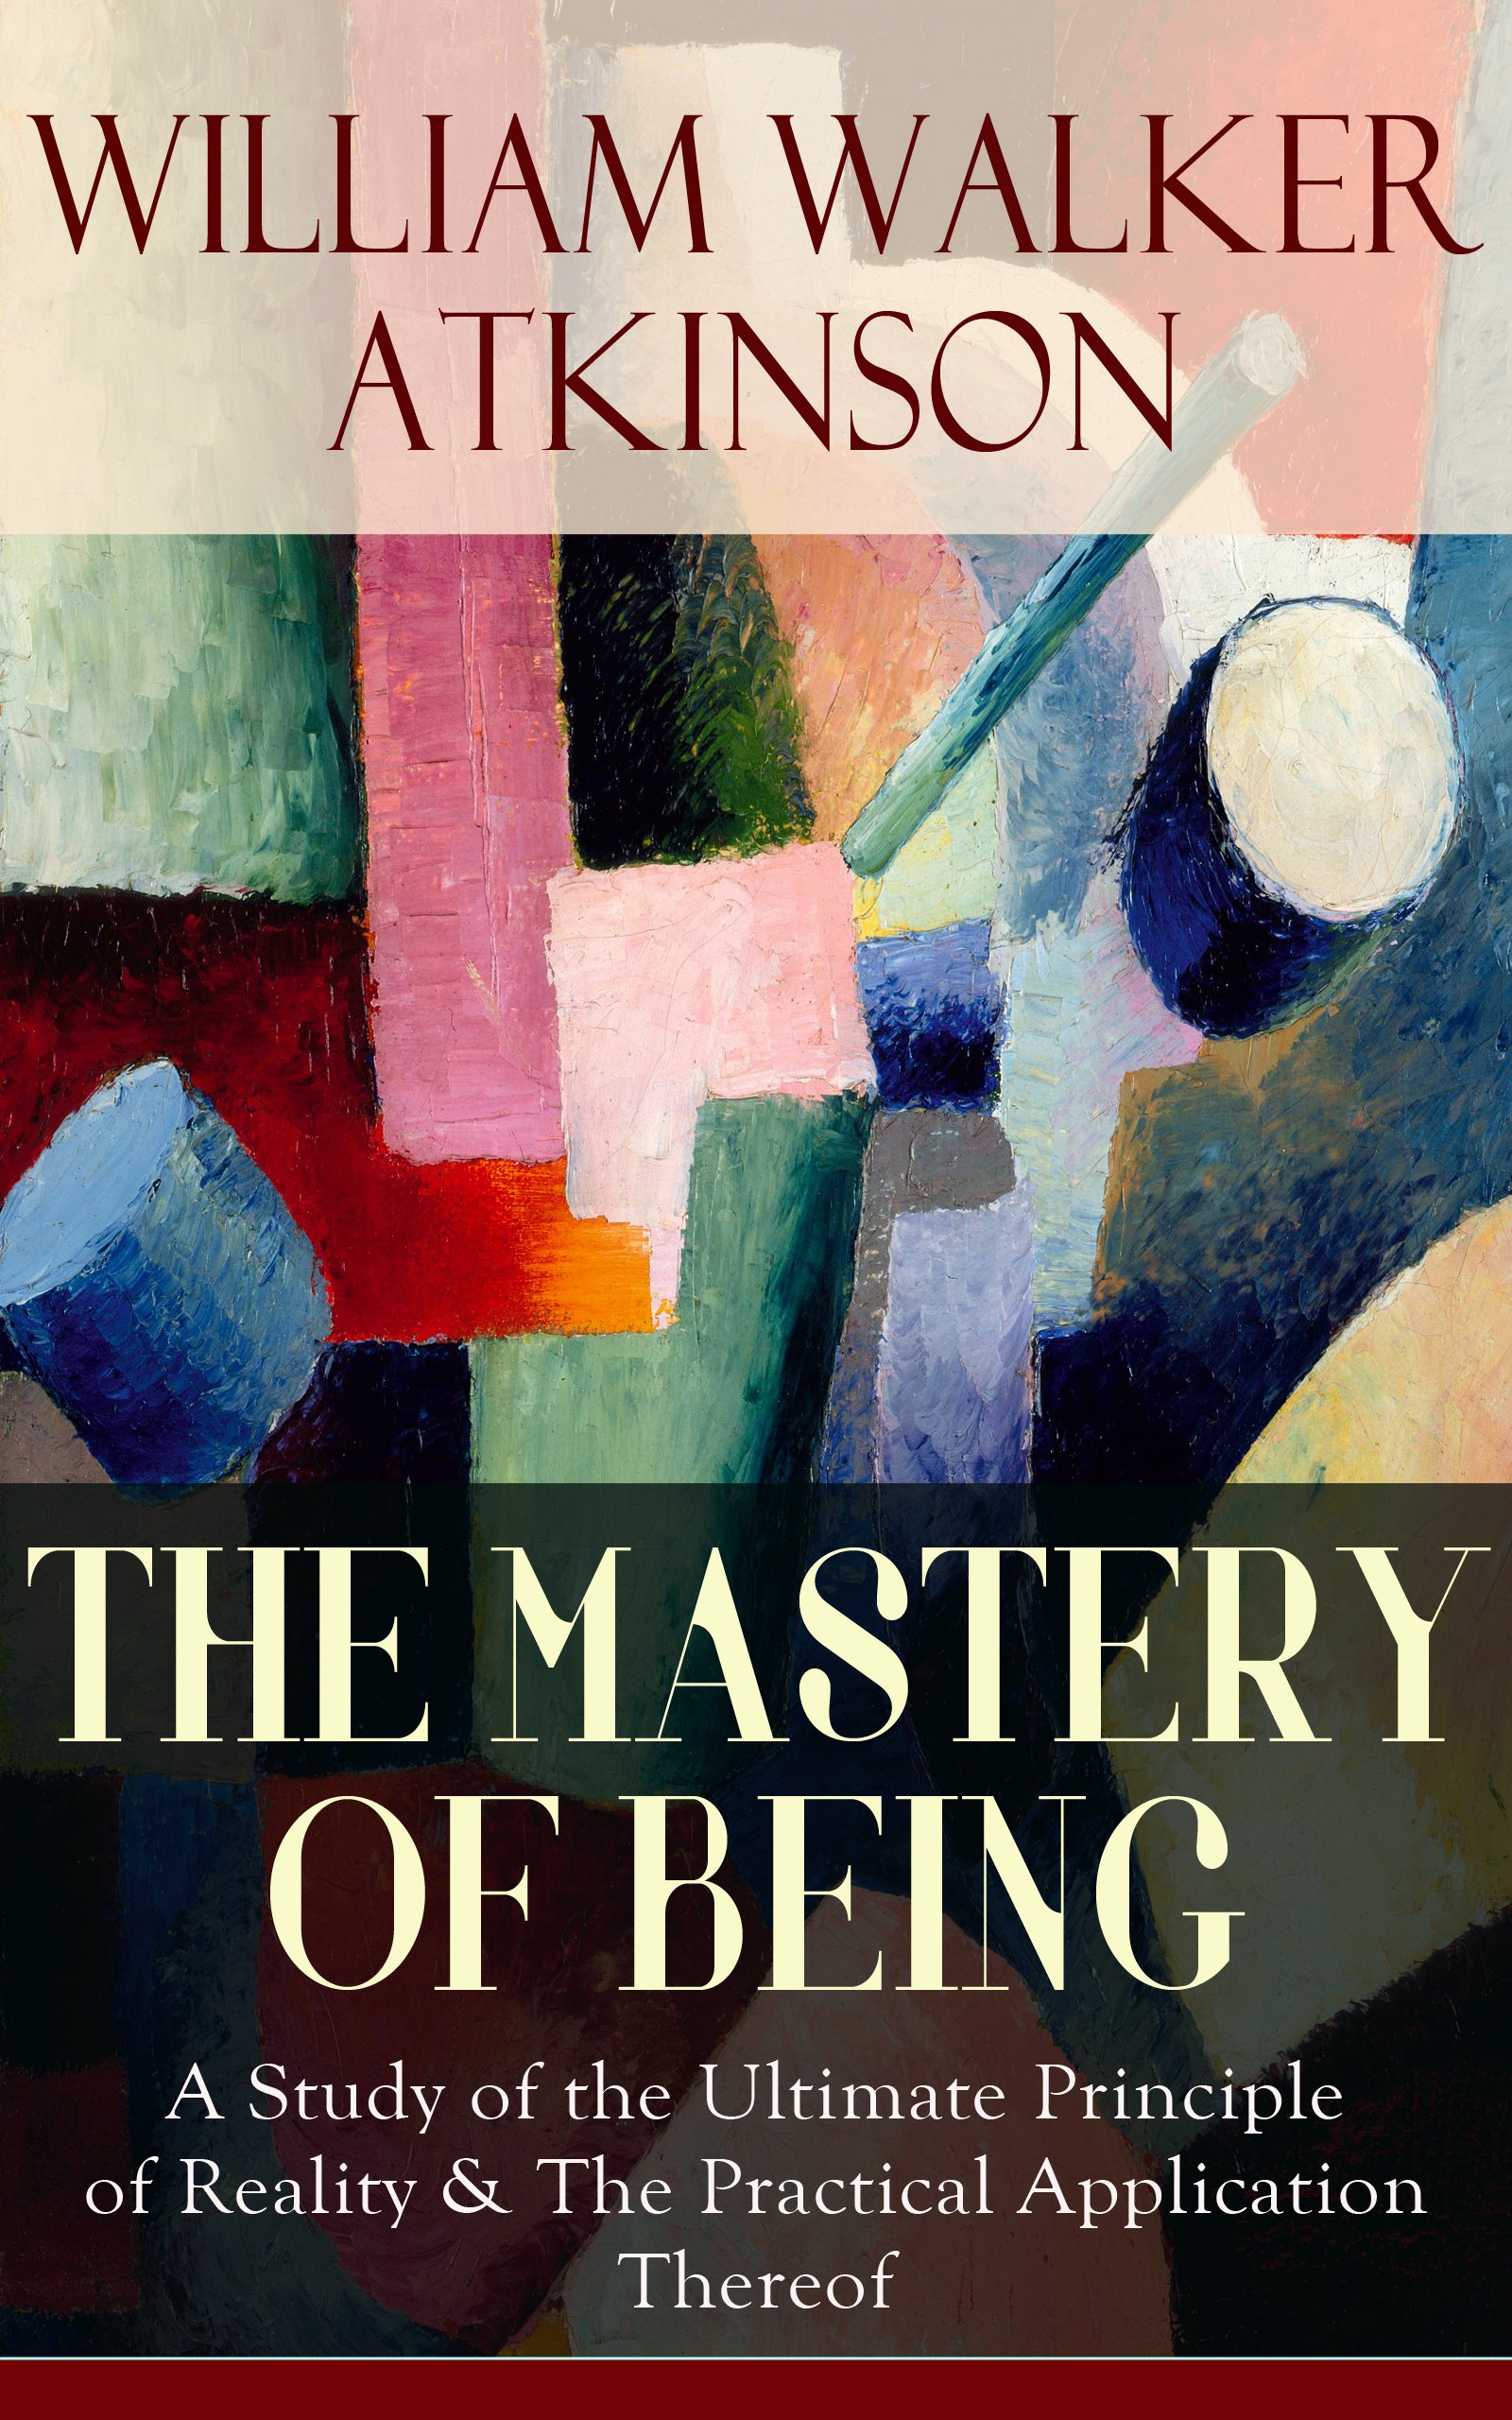 цена на William Walker Atkinson THE MASTERY OF BEING - A Study of the Ultimate Principle of Reality & The Practical Application Thereof